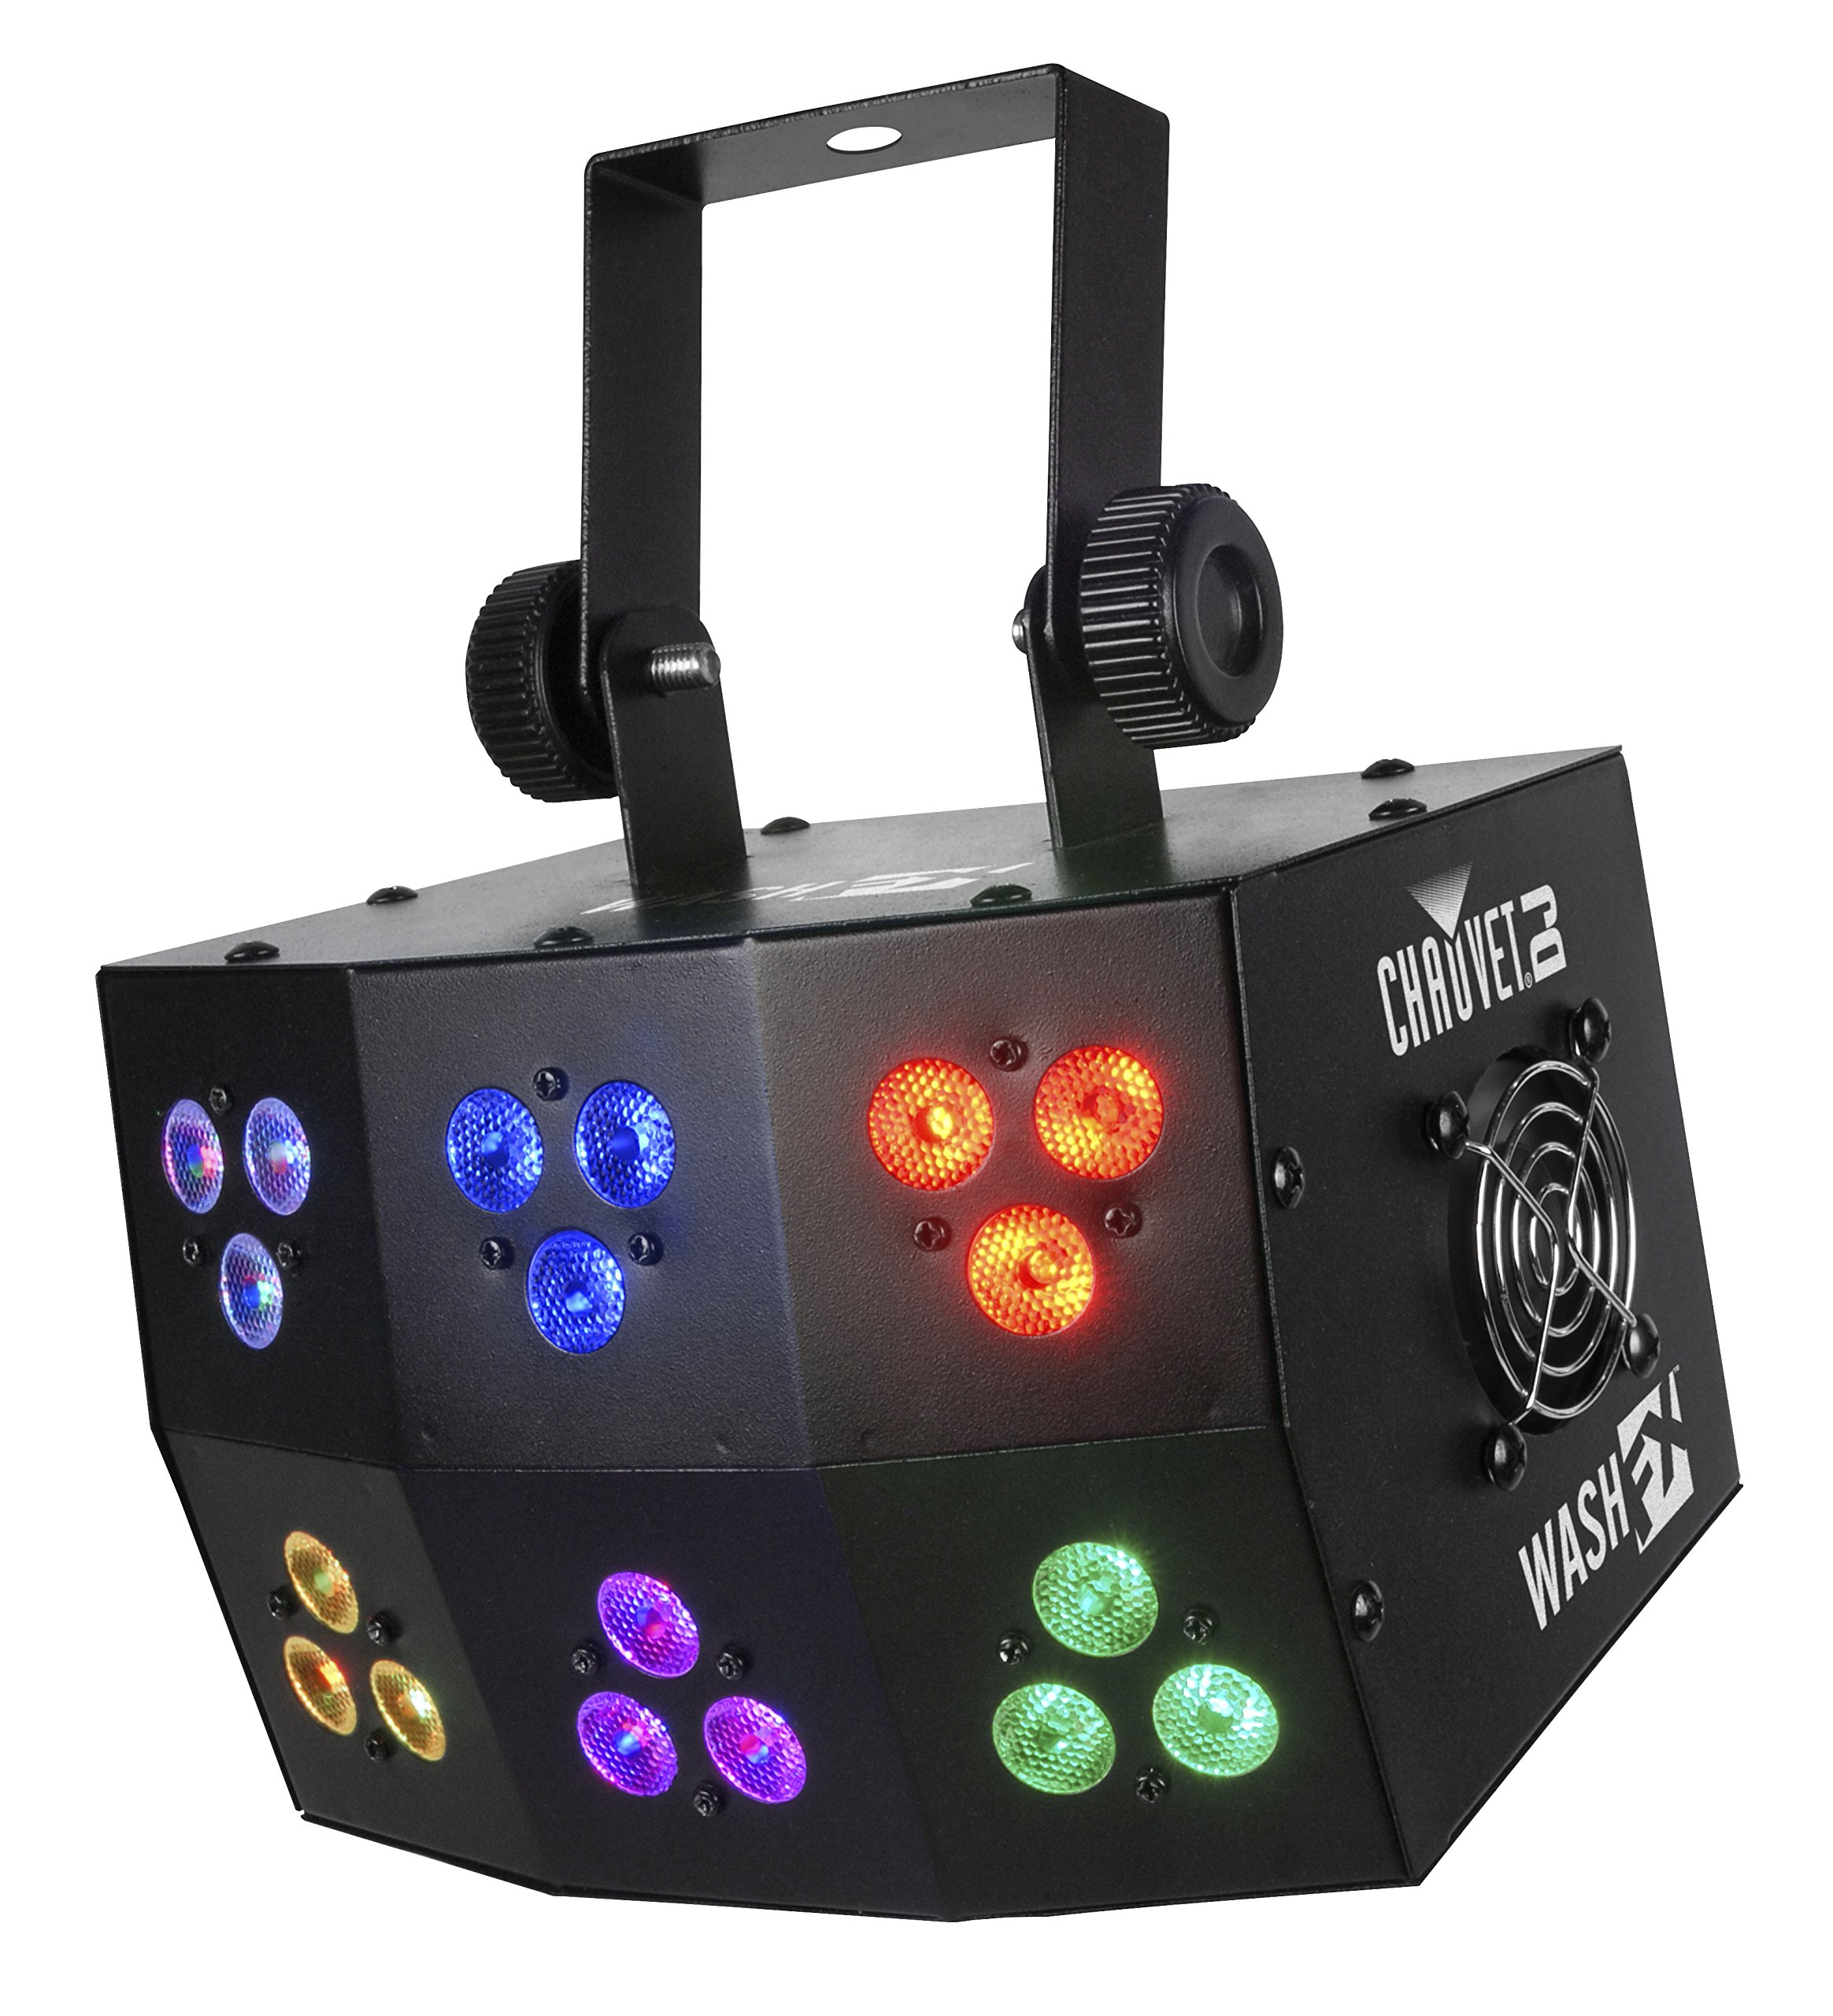 CHAUVET DJ Wash FX LED Wash/Effect Light | Special Effects